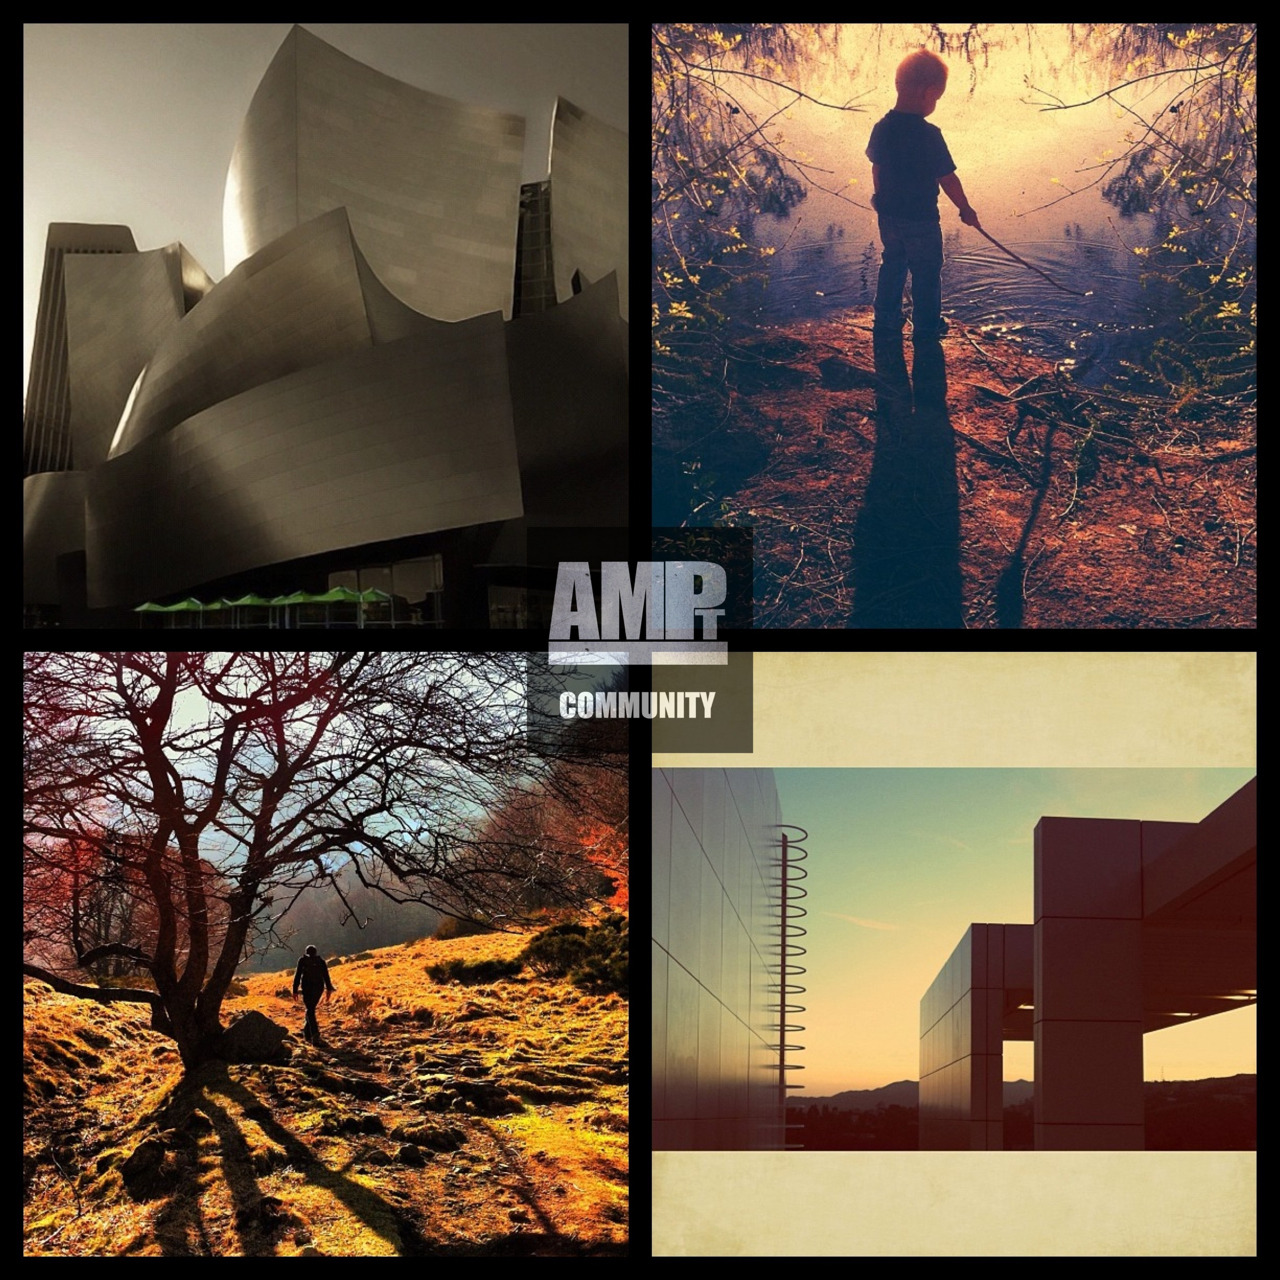 AMPt Community Recommendations   Here are 4 IGers we would like to introduce you to. Stop by their feeds,say hello and check out their editing process for the images above!   Clockwise from top left:   @deonizayus  Shot with native camera Apps used: picFx, snapseed   @shuntavi  Shot with native camera Apps used: blender, picfx   @p67_bylynettejackson  Shot with native camera  Apps: photo toaster, cameramatic,blender   @rhapsody63  Shot with native camera  Apps used:snapseed    Thank you for sharing with #AMPt_Community! Interested in having your work seen and considered for a spotlight? Tag to #Ampt_Community and include apps used and your editing process in the comment.    TIP: Listing the apps used to shoot/edit is a requirement for all nominated/featured images. Make your image standout by providing this information!